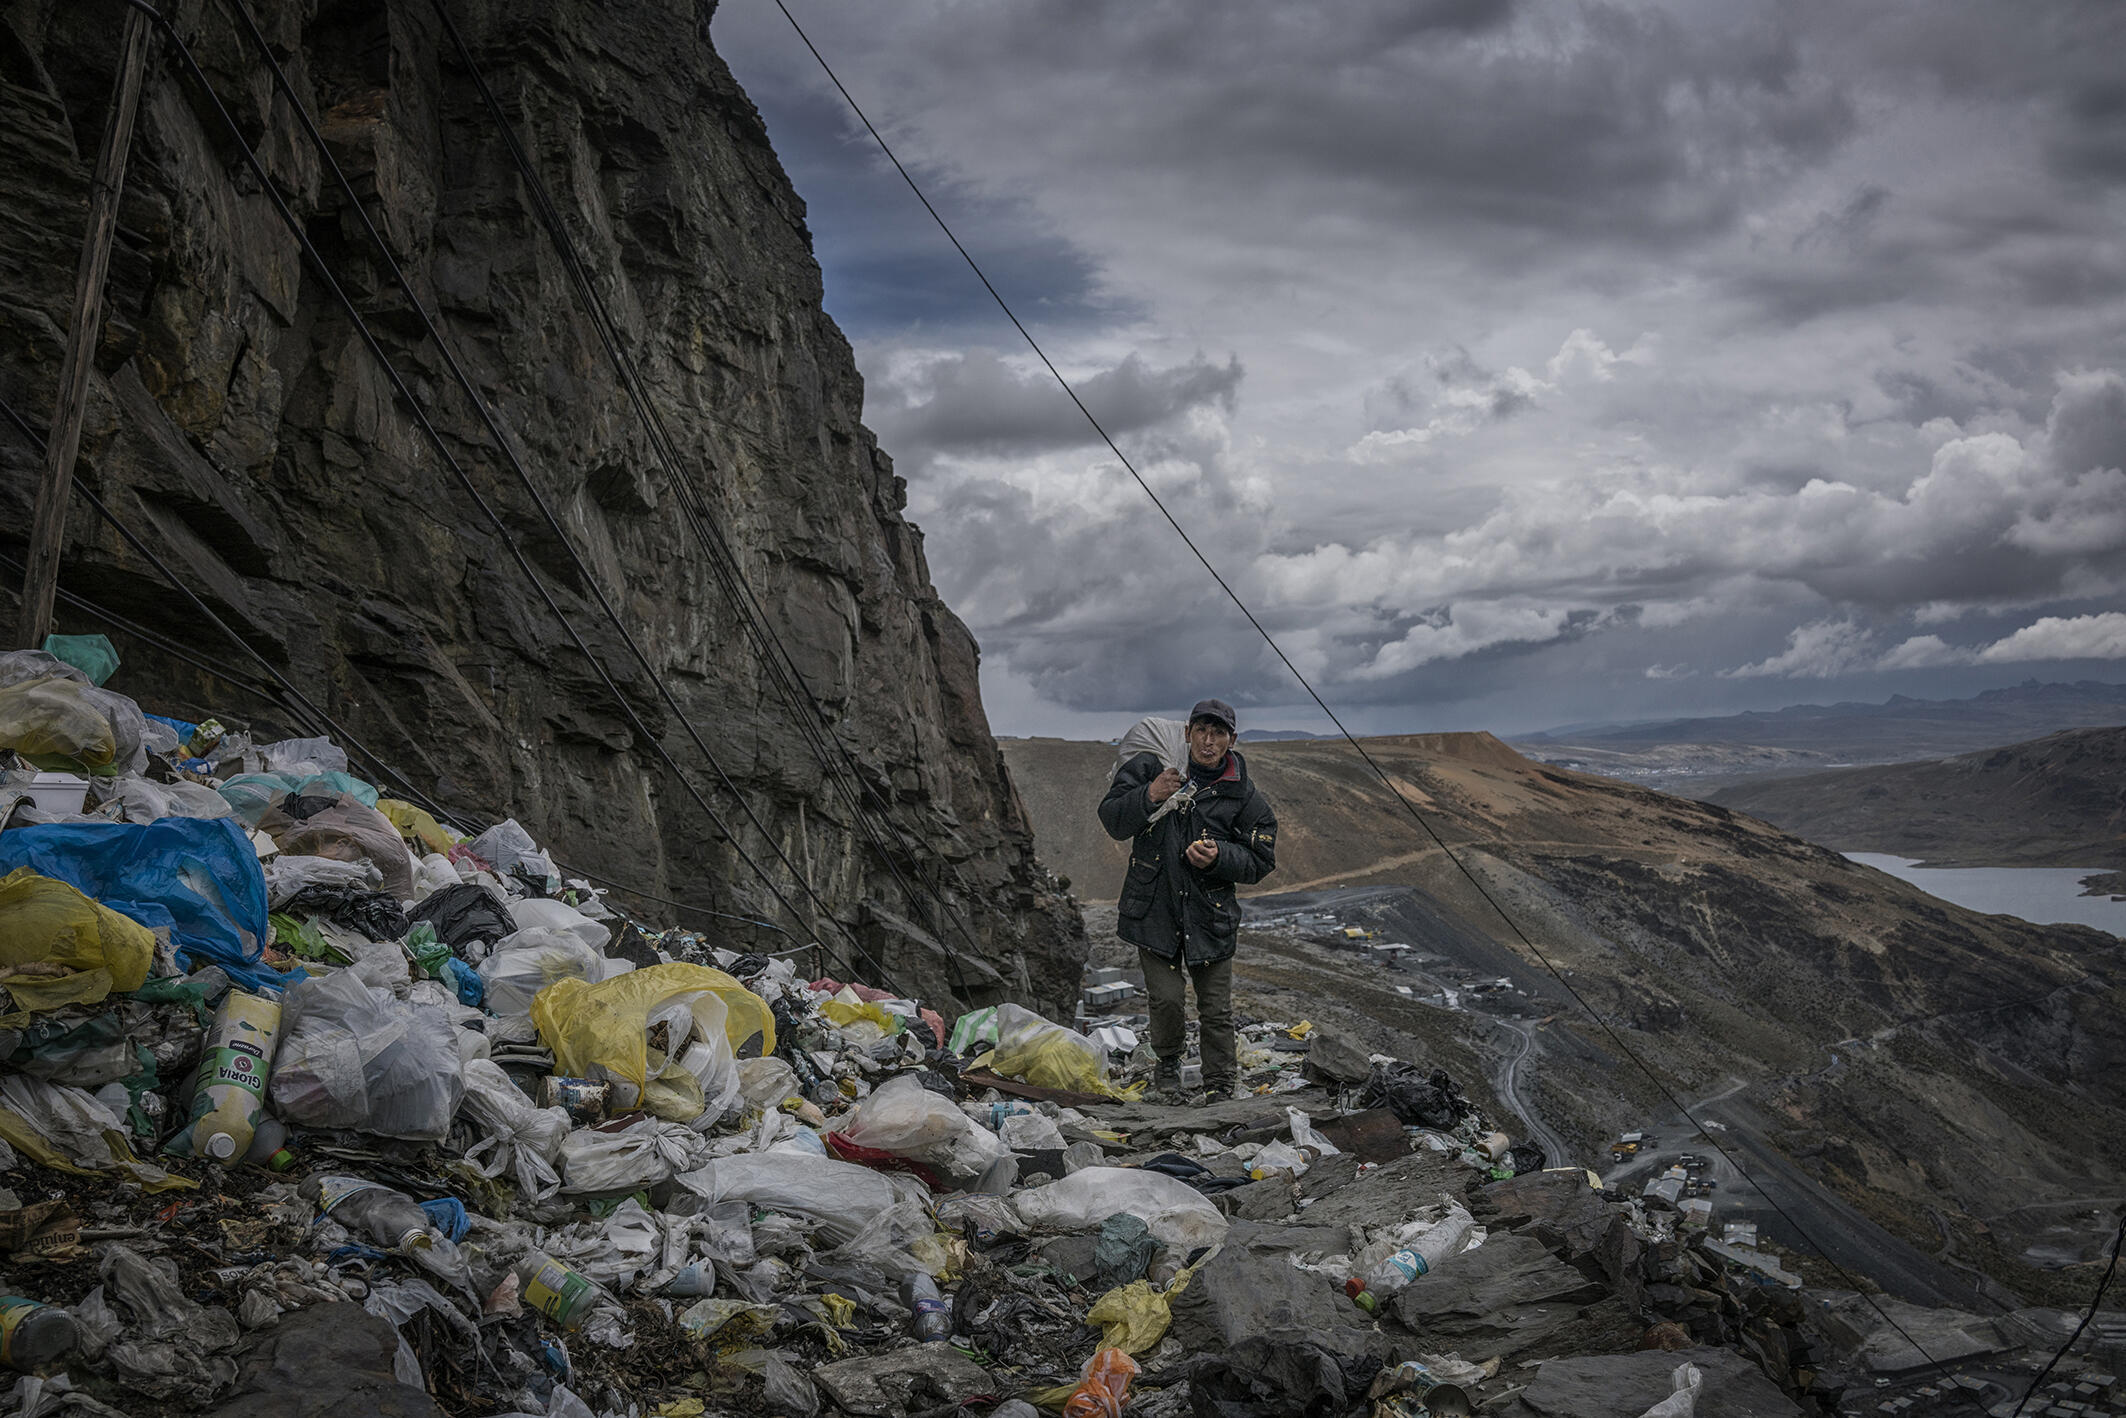 A miner returning home along a precipice littered with single-use plastic trash. La Rinconada, Peru.